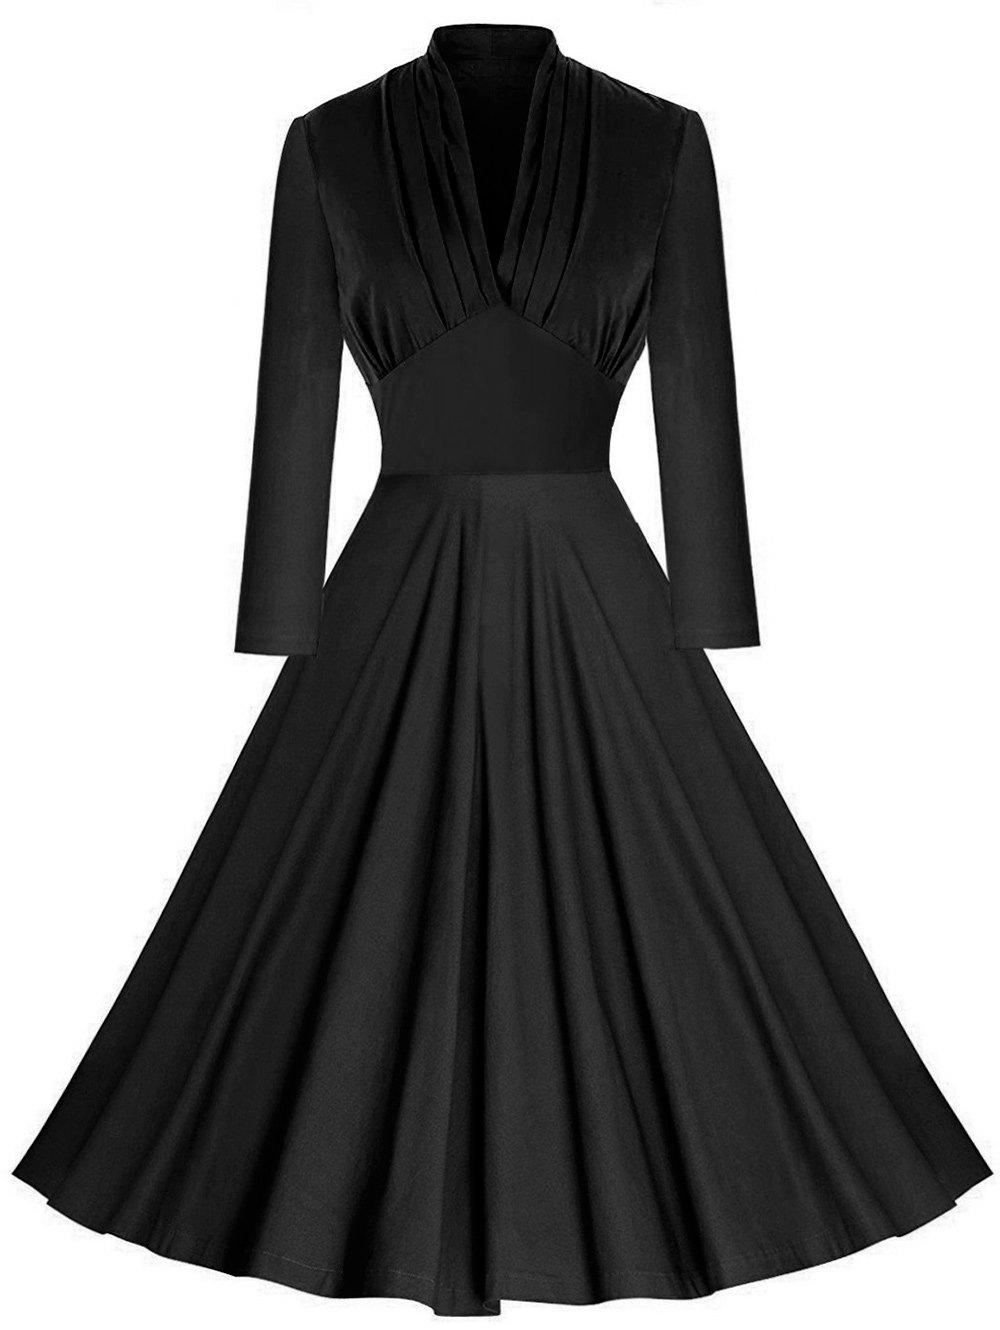 Vintage Pleated Plunging Empire Waist DressWOMEN<br><br>Size: XL; Color: BLACK; Style: Vintage; Material: Polyester; Silhouette: A-Line; Dresses Length: Knee-Length; Neckline: Plunging Neck; Sleeve Length: Long Sleeves; Waist: Empire; Embellishment: Pleated; Pattern Type: Solid Color; With Belt: No; Season: Fall,Spring; Weight: 0.4000kg; Package Contents: 1 x Dress;